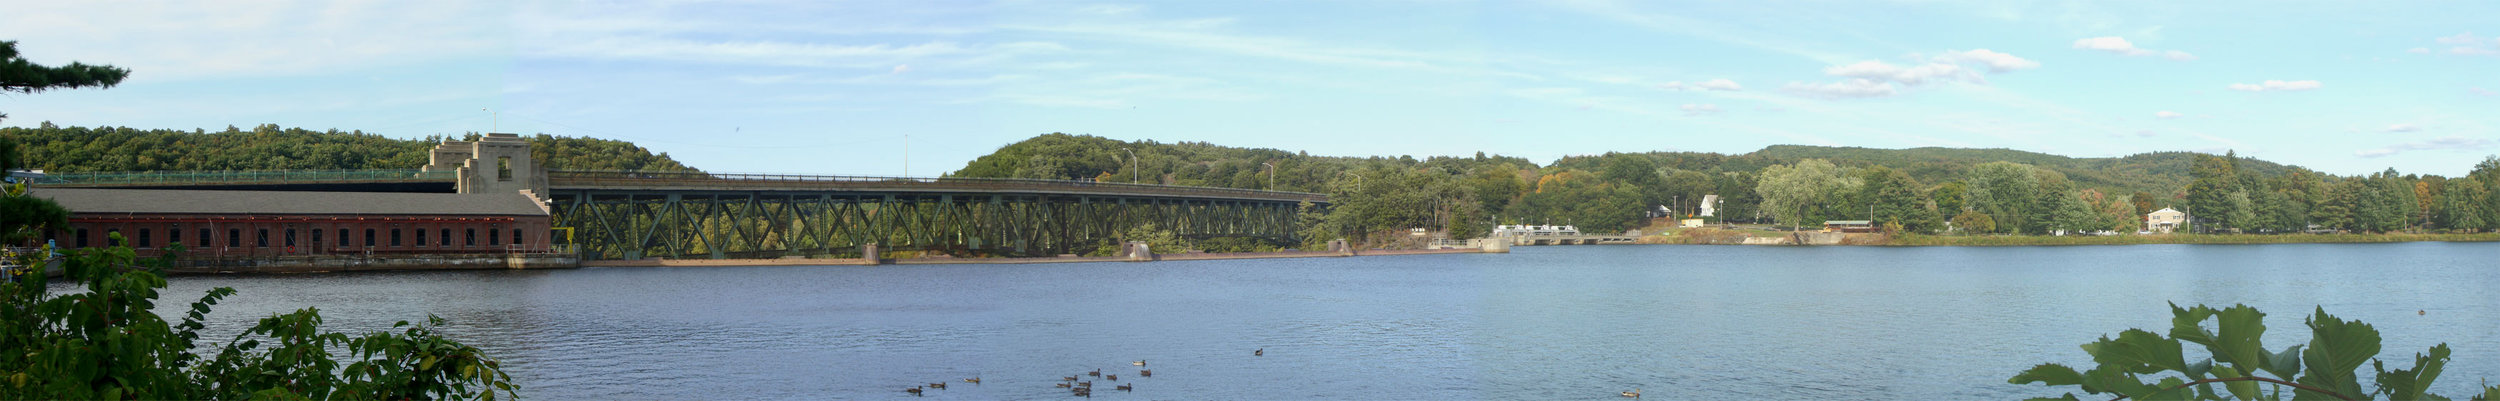 The Connecticut River From Turners Falls